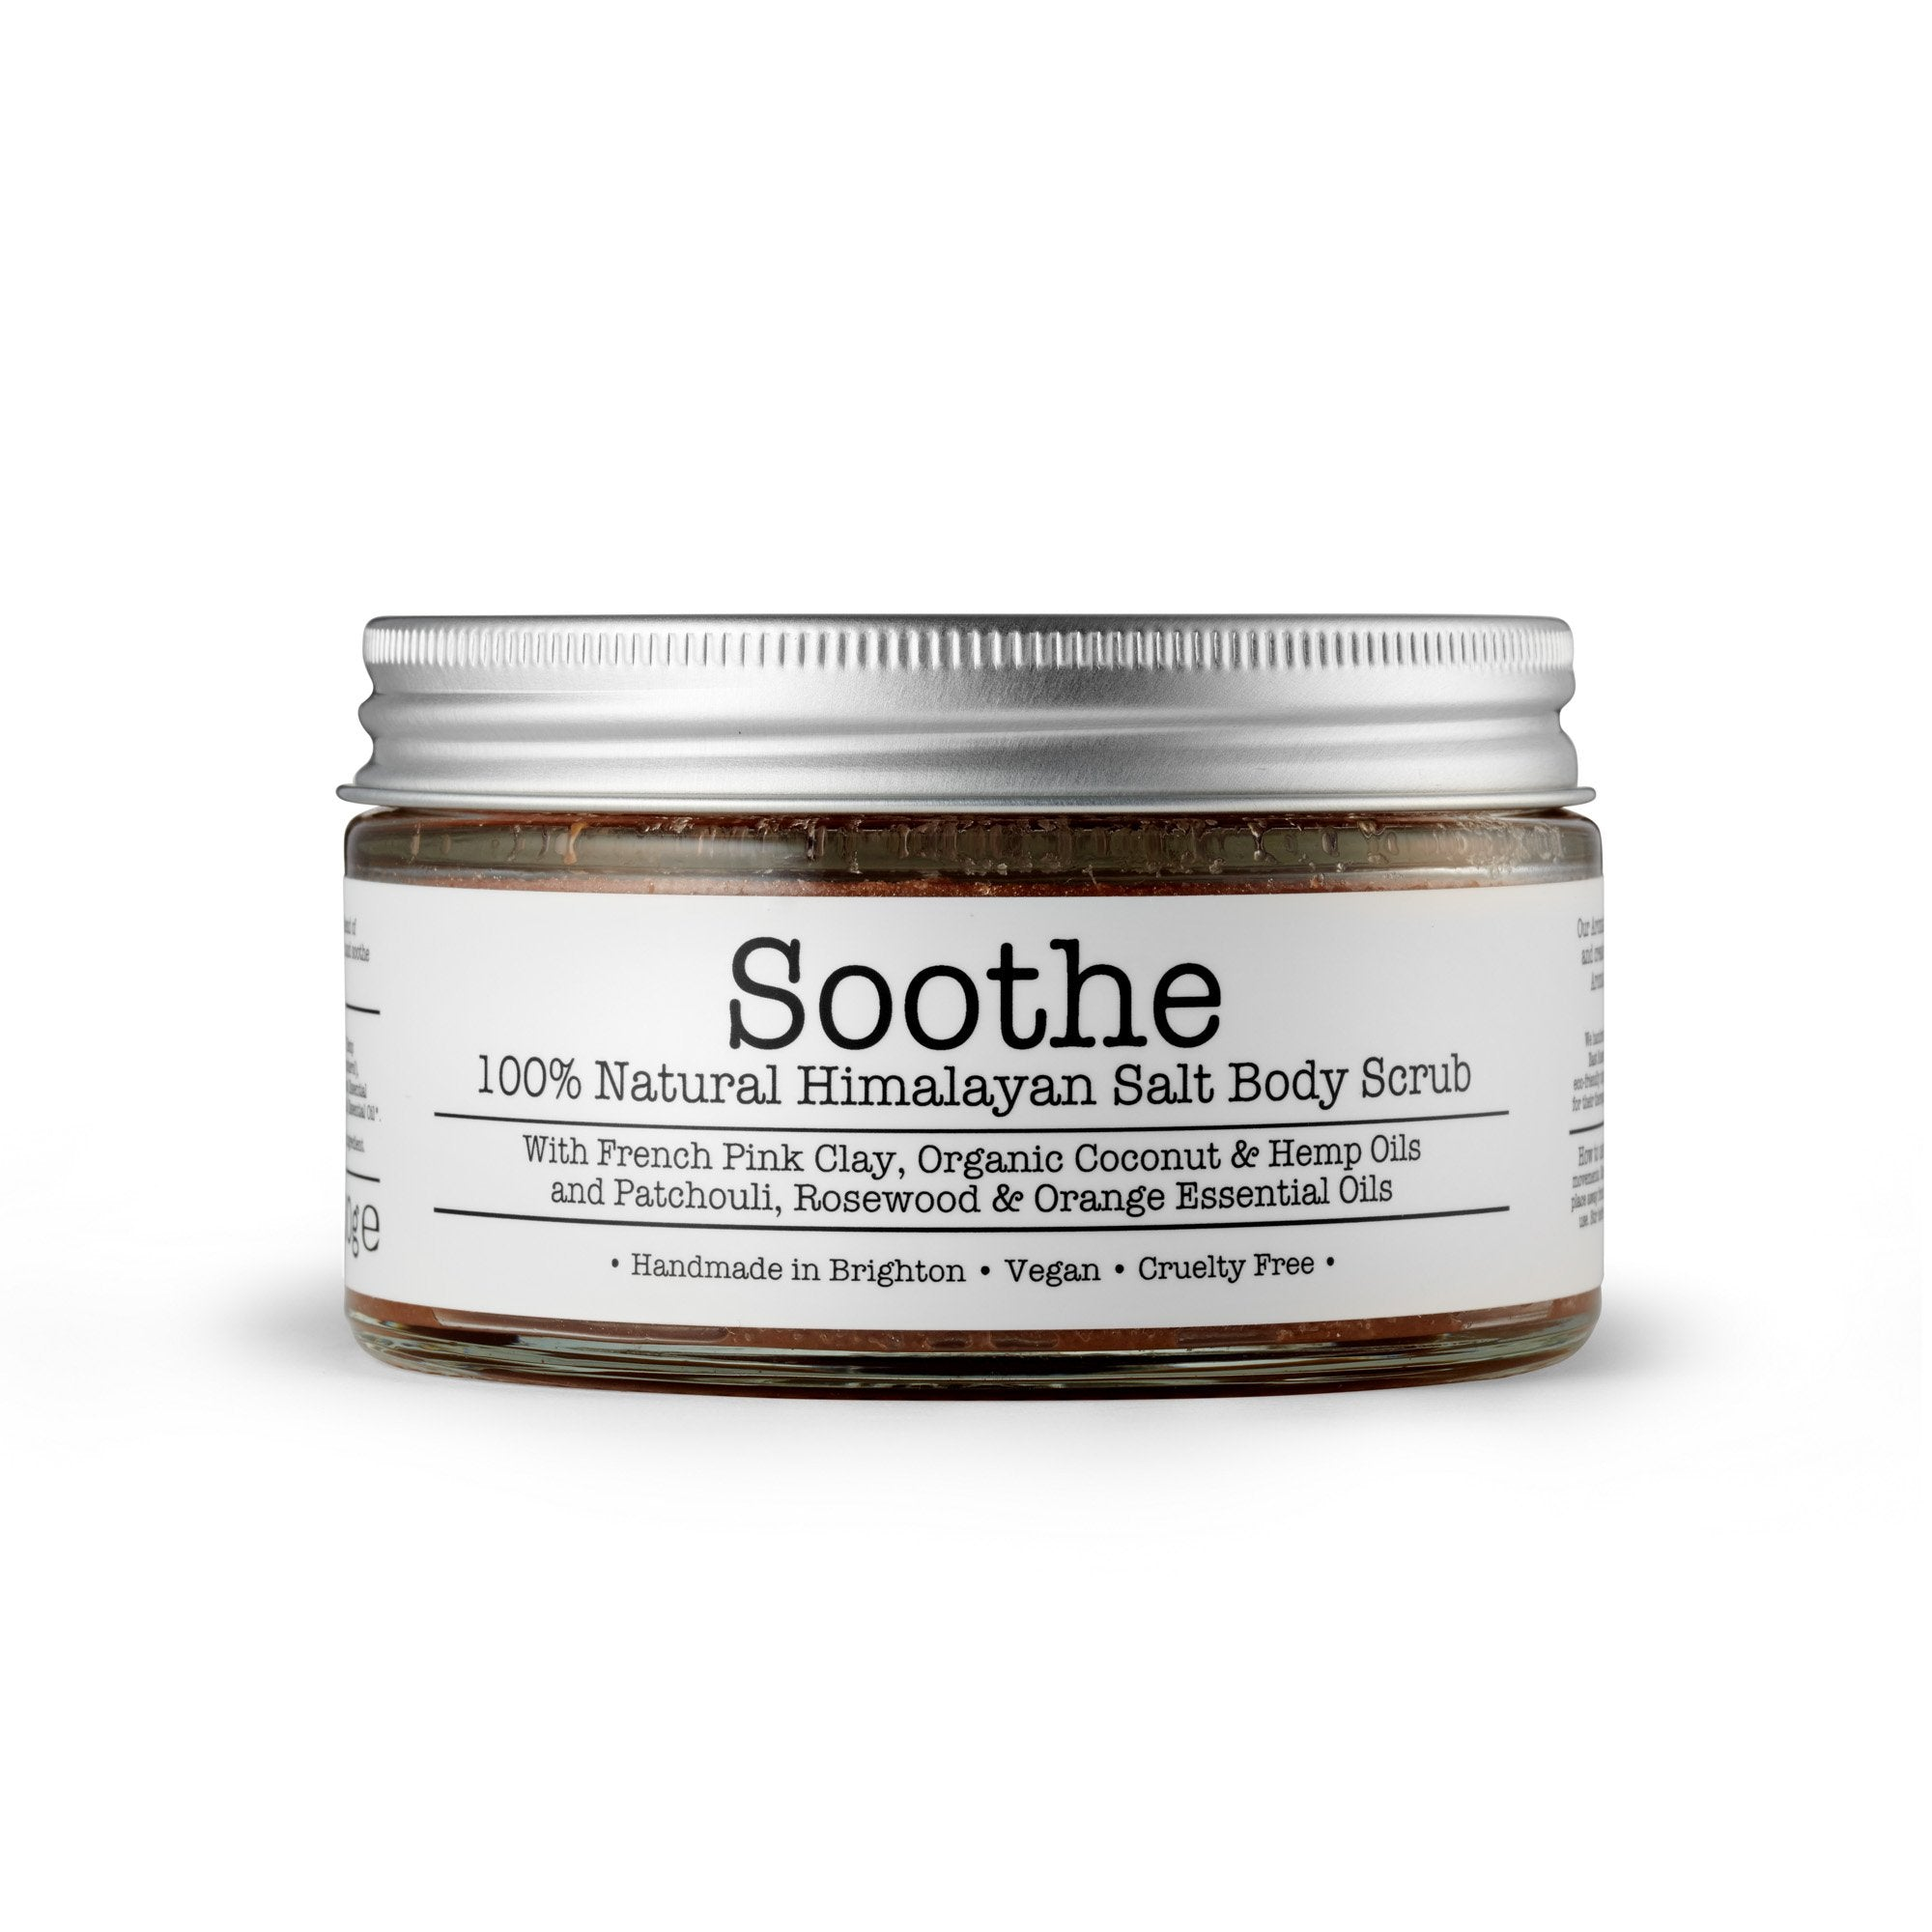 Soothe Himalayan Salt Body Scrub by Corinne Taylor. Made with a combination of organic Coconut, Hemp and Sweet Almond Oils along with French Pink Clay, vitamin E and organic Rosewood, Patchouli, Sweet Orange and Lavender essential oils.